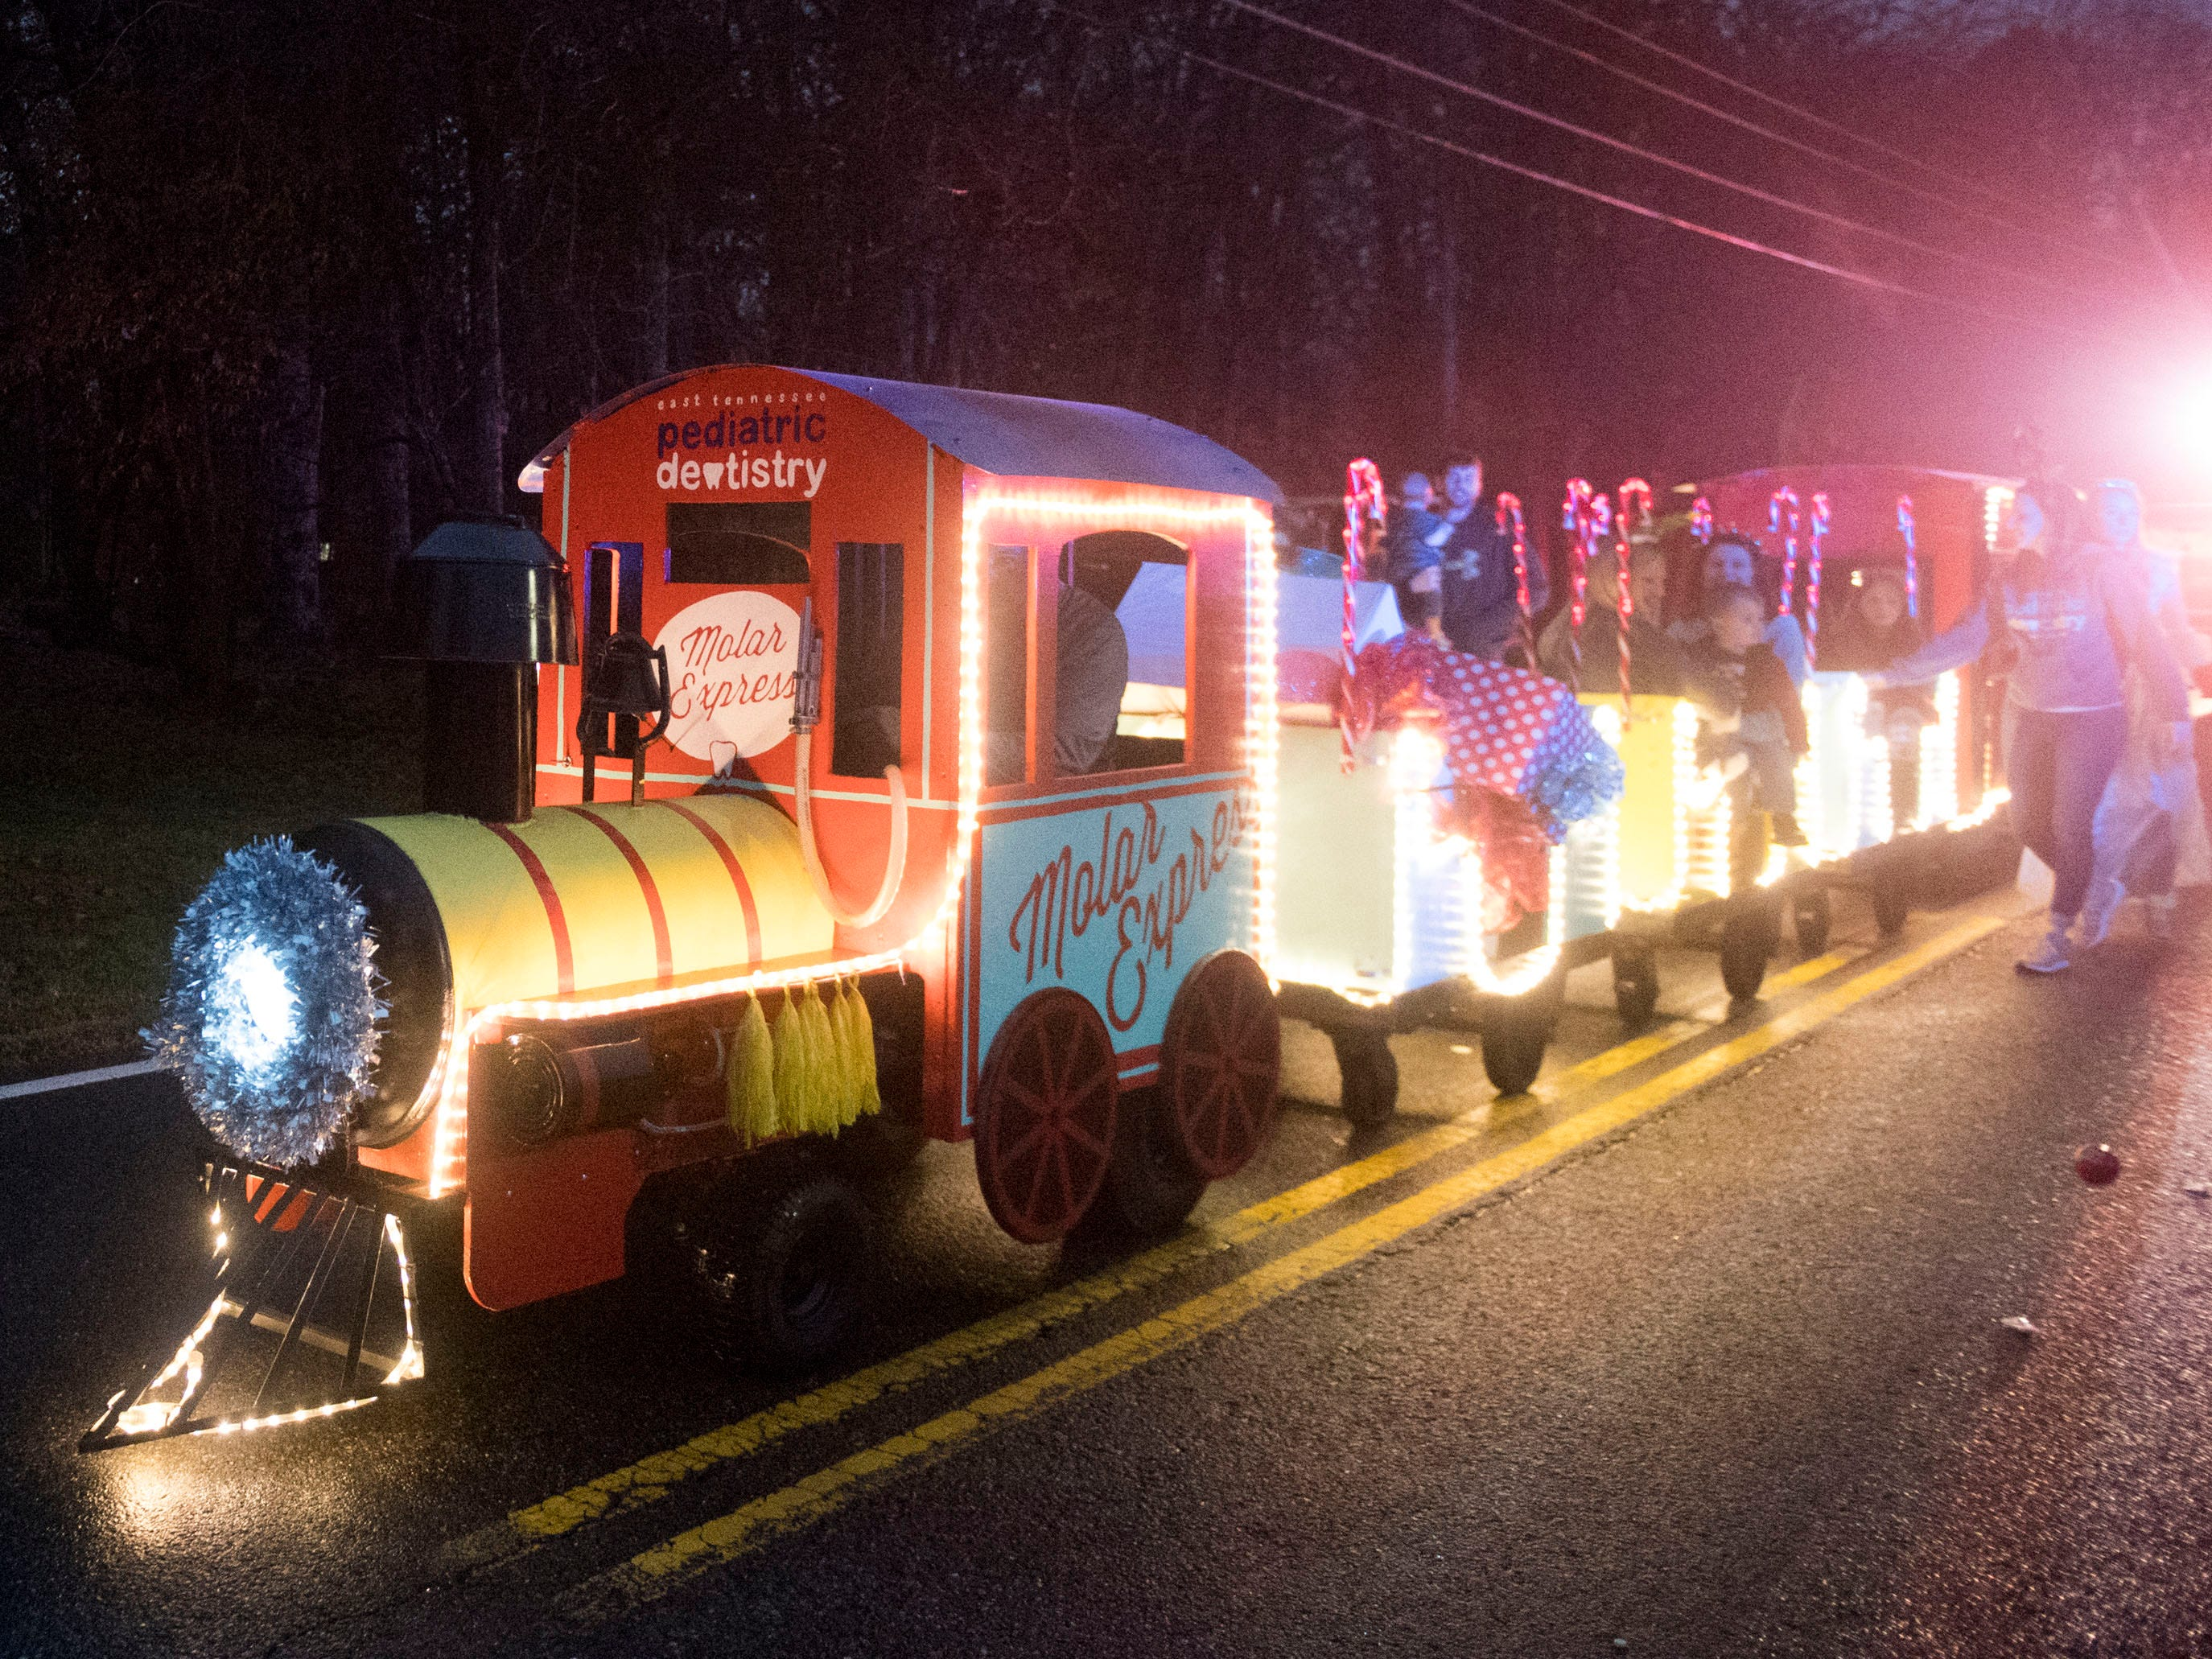 East Tennessee Pediatric Dentistry's Molar Express at the Powell Lions Club Christmas Parade on Saturday, December 1, 2018.